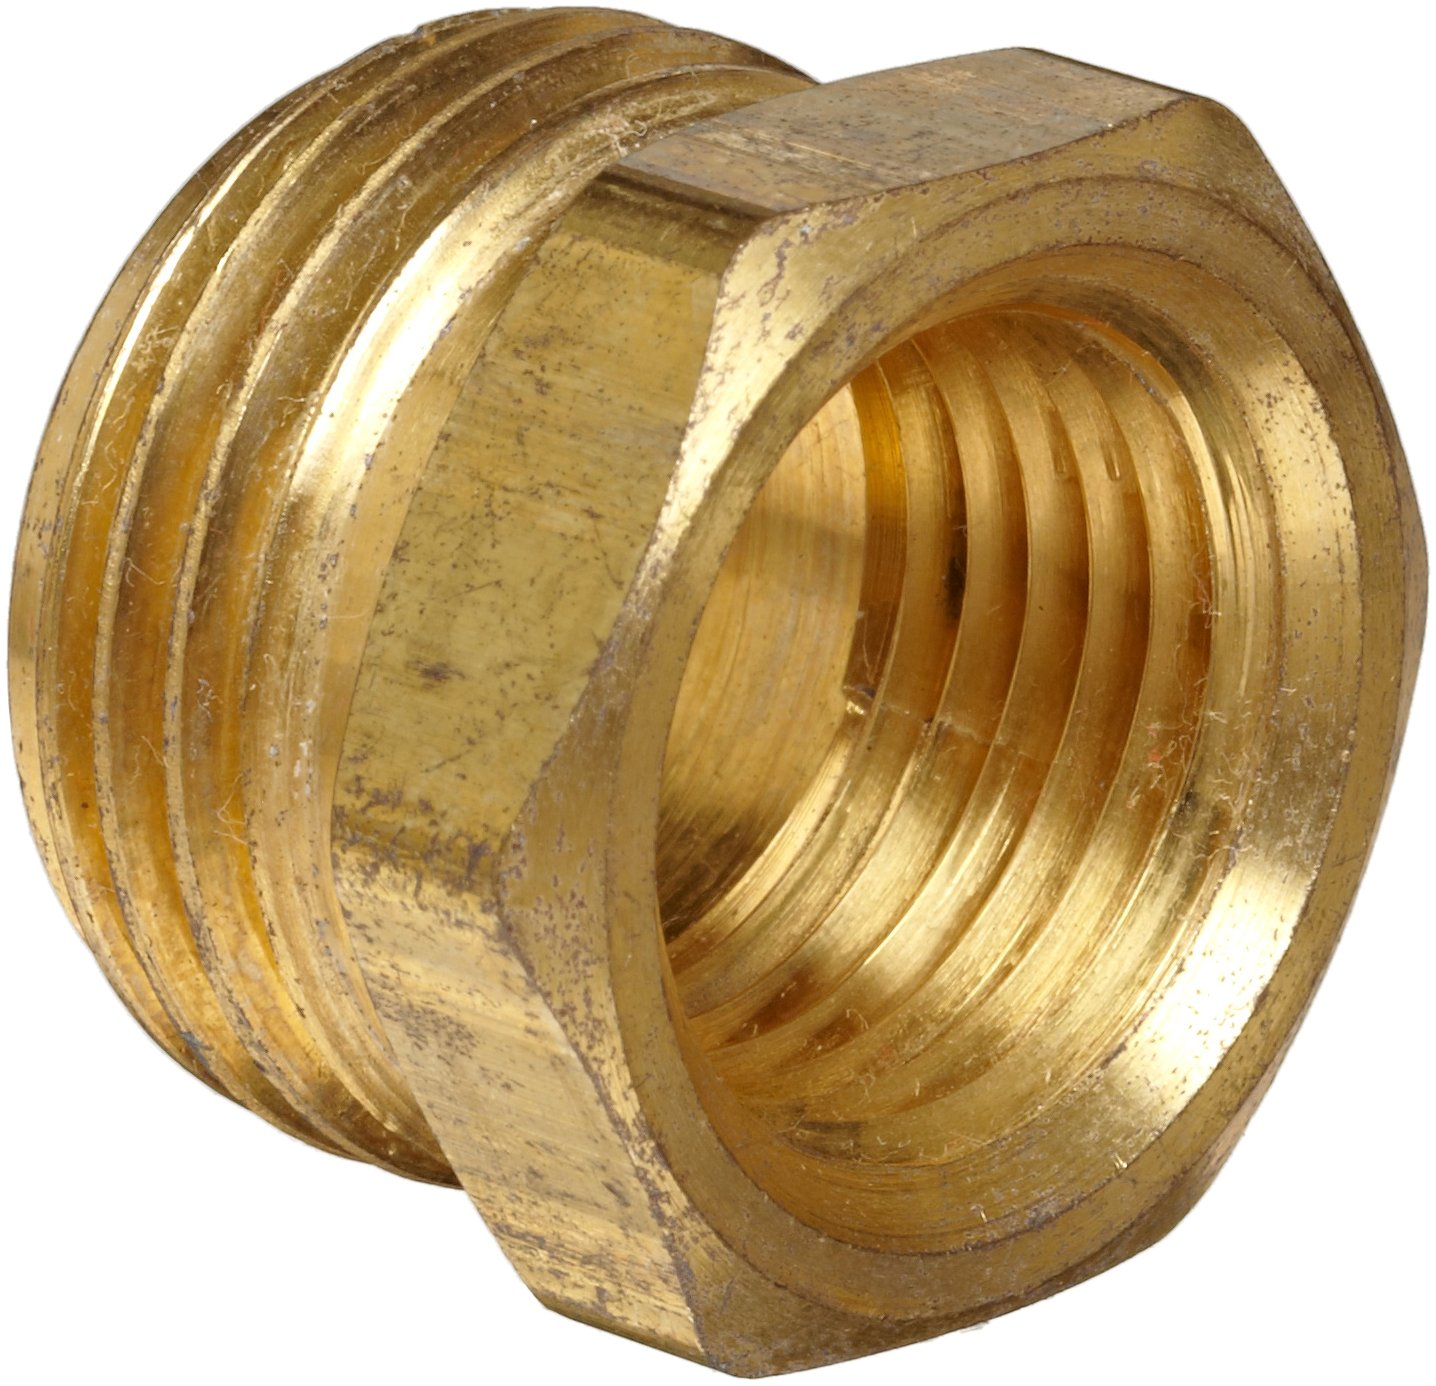 Anderson Metals Brass Garden Hose Fitting Connector 3 4 Male Hose ID x 1 2 Female Pipe